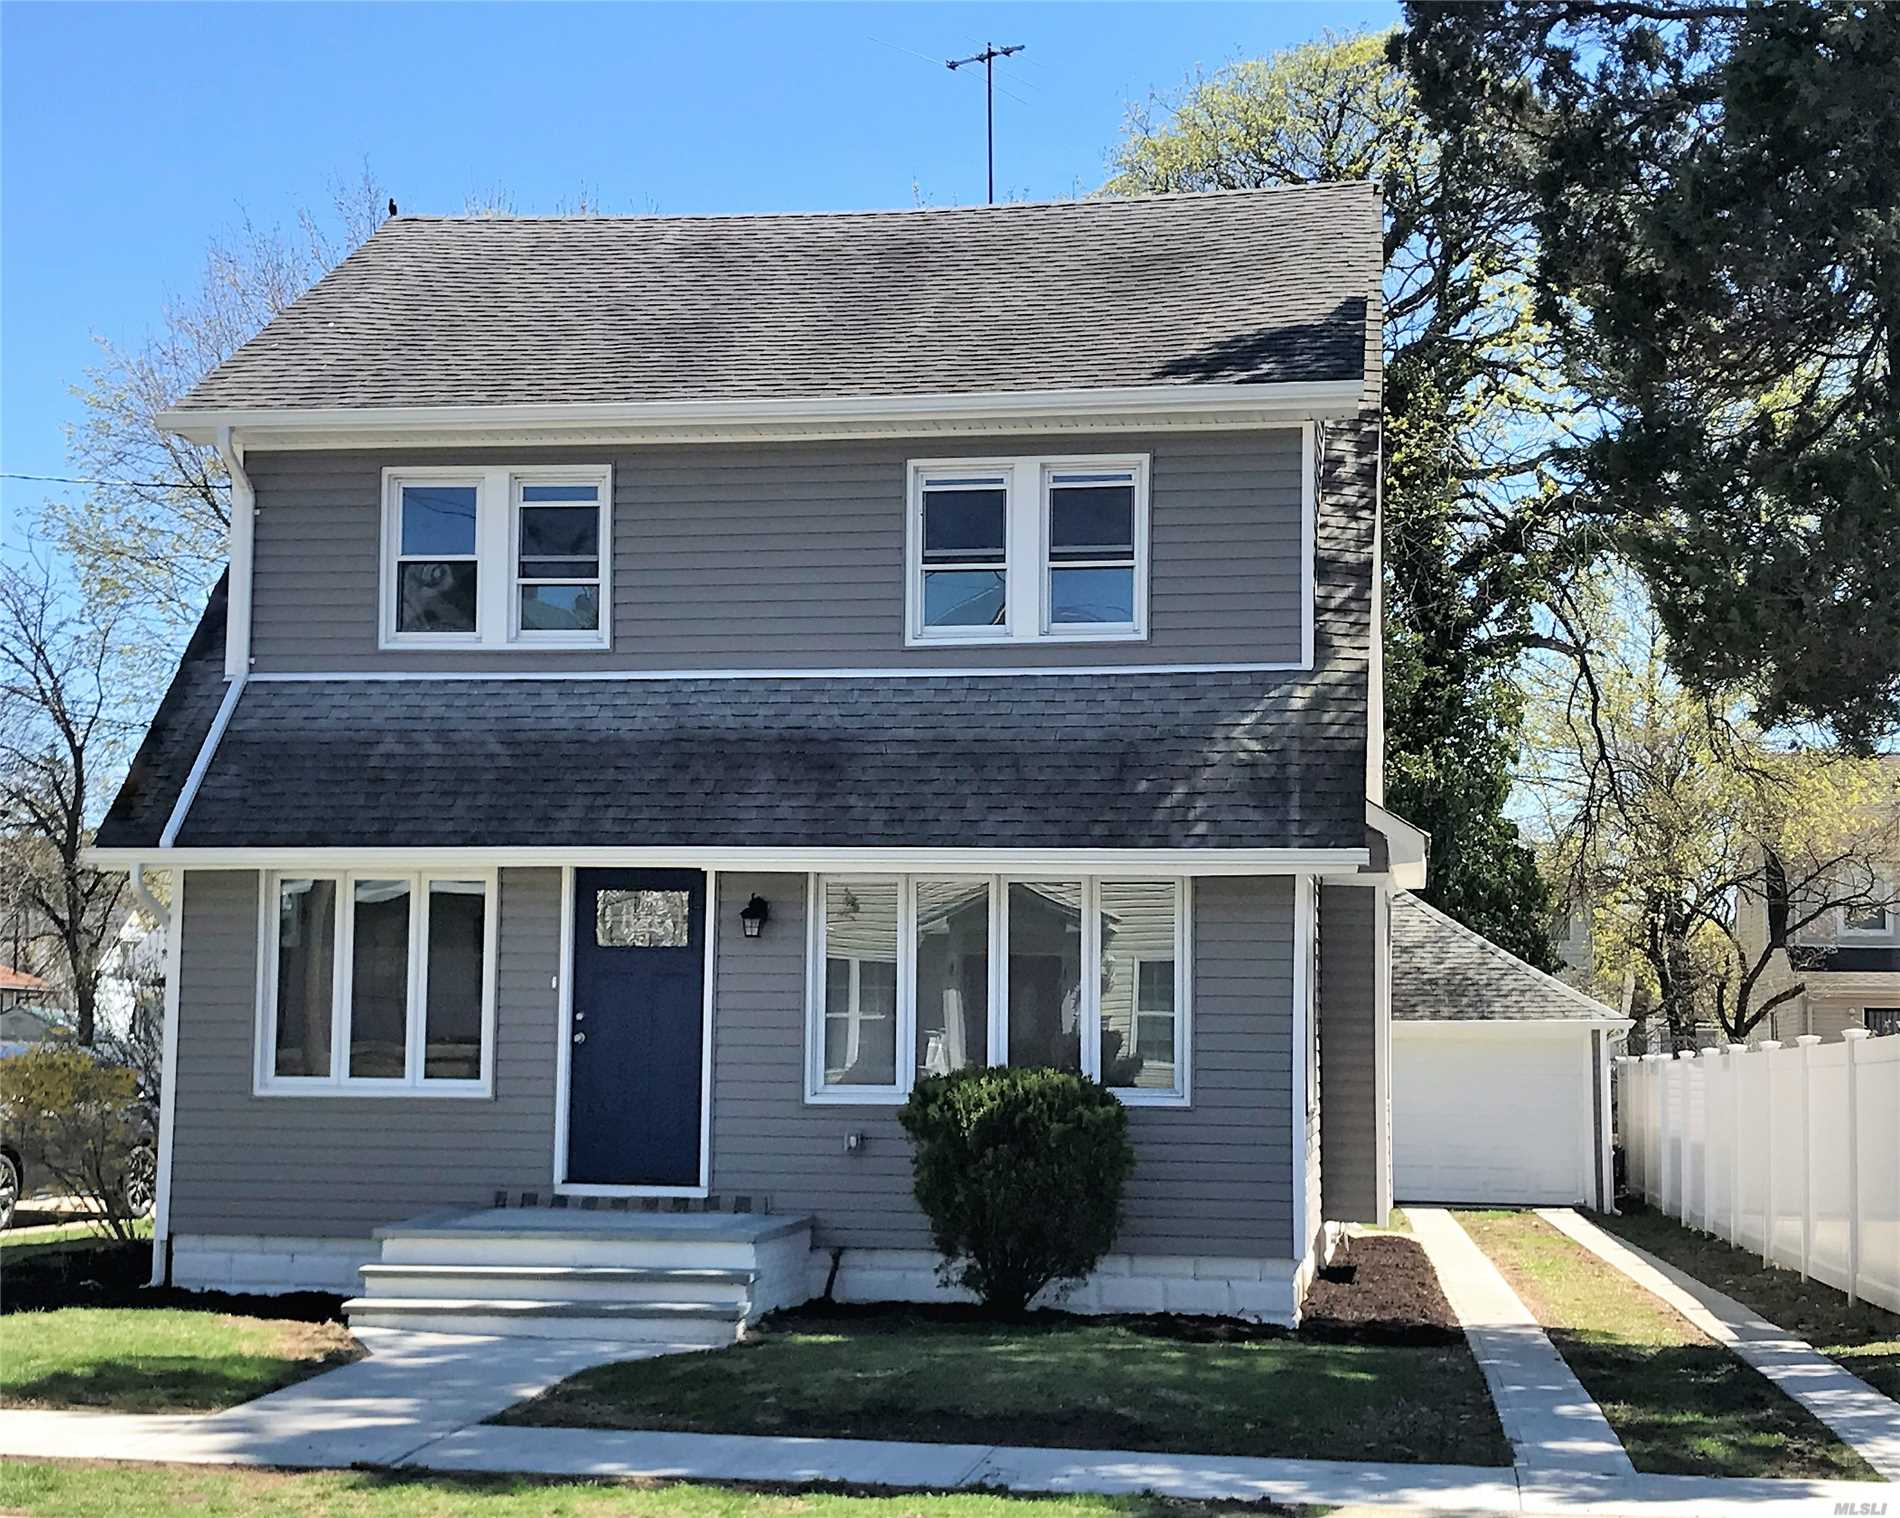 Completely renovated, 4 bedrooms, 3 full bathrooms, Open concept, hardwood floors, stainless steel appliances with quartz counter tops, fully finished basement with bonus room and OSE. High efficient navien boiler, tankless hotwater heater, brand new approx 80 feet long driveway and detached garage,